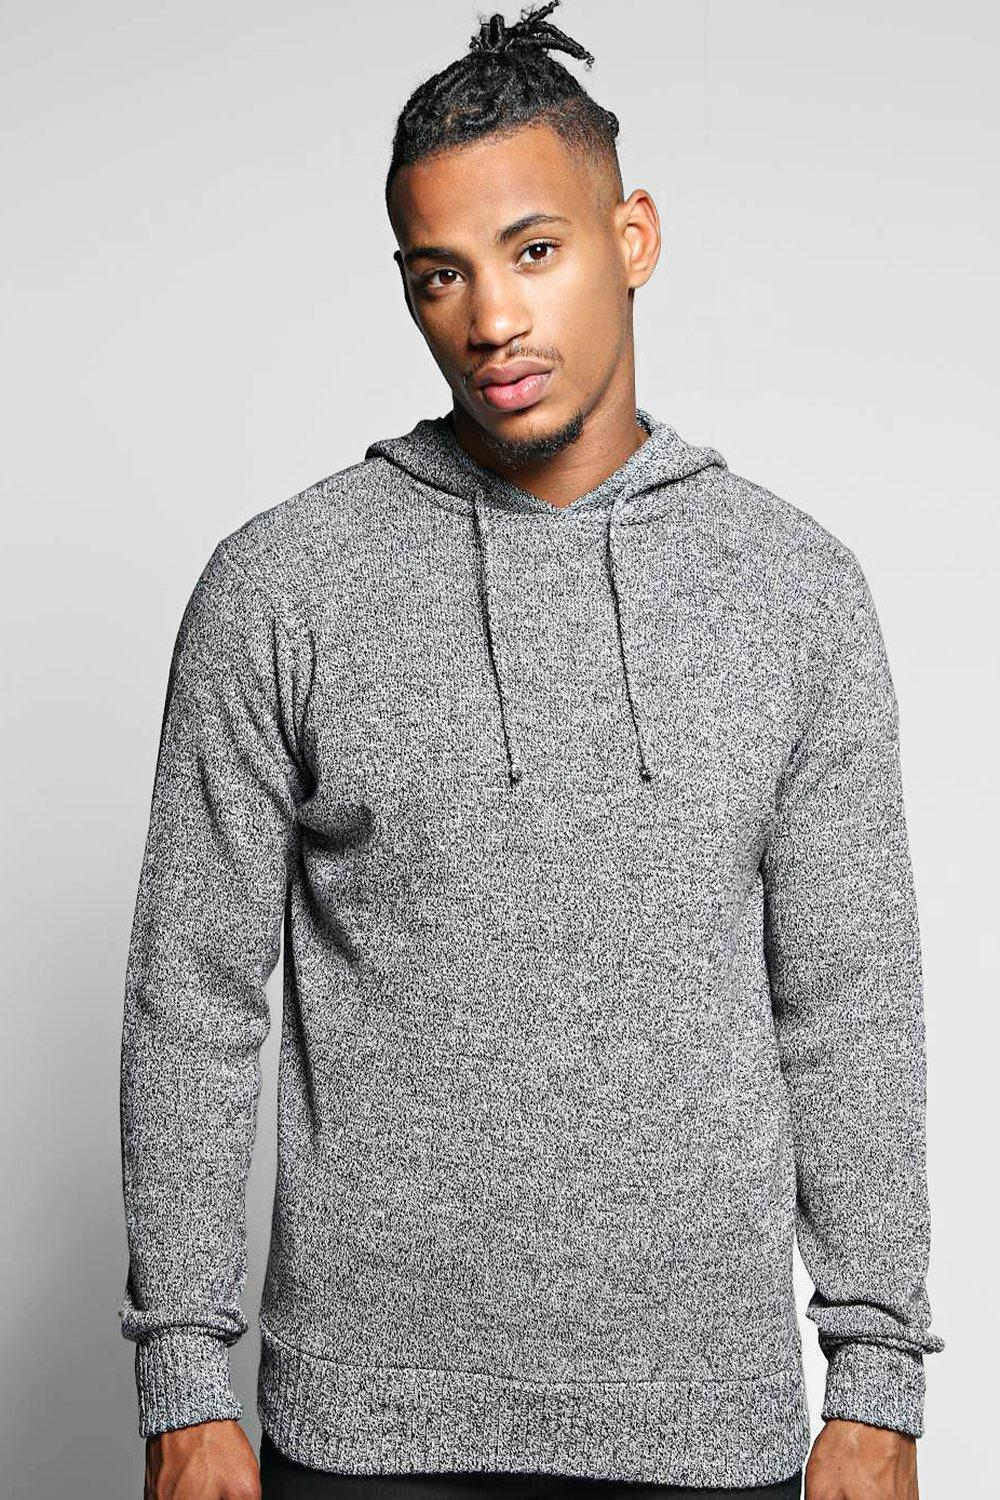 Mixed Yarn Hooded Knitted Tracksuit Top